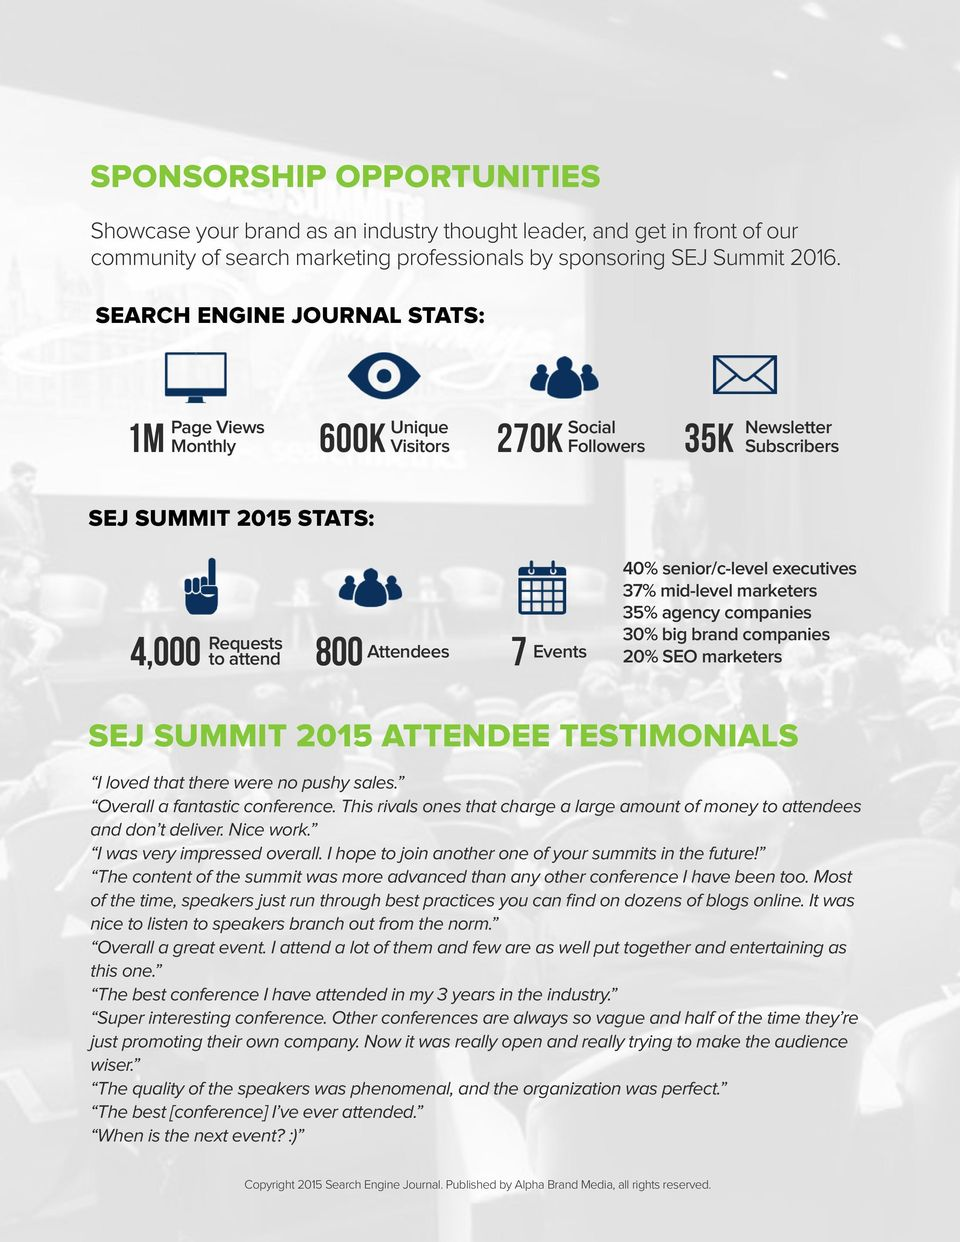 senior/c-level executives 37% mid-level marketers 35% agency companies 30% big brand companies 20% SEO marketers SEJ SUMMIT 2015 ATTENDEE TESTIMONIALS I loved that there were no pushy sales.